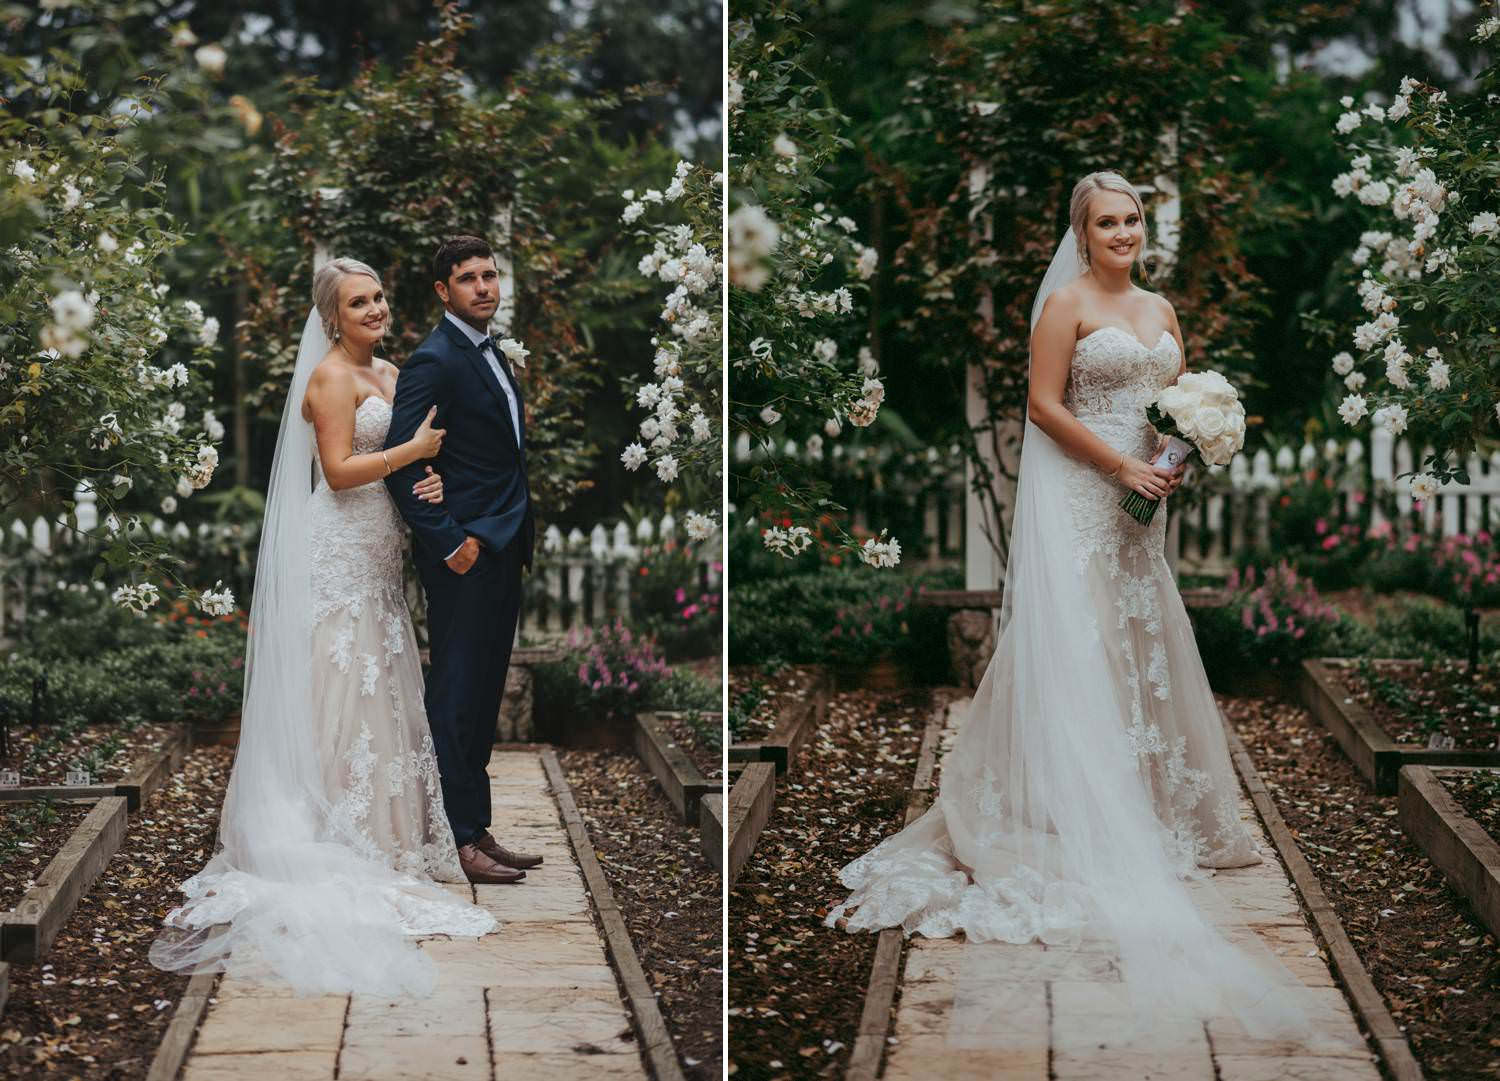 Bride and Groom in rose garden at In the Grove